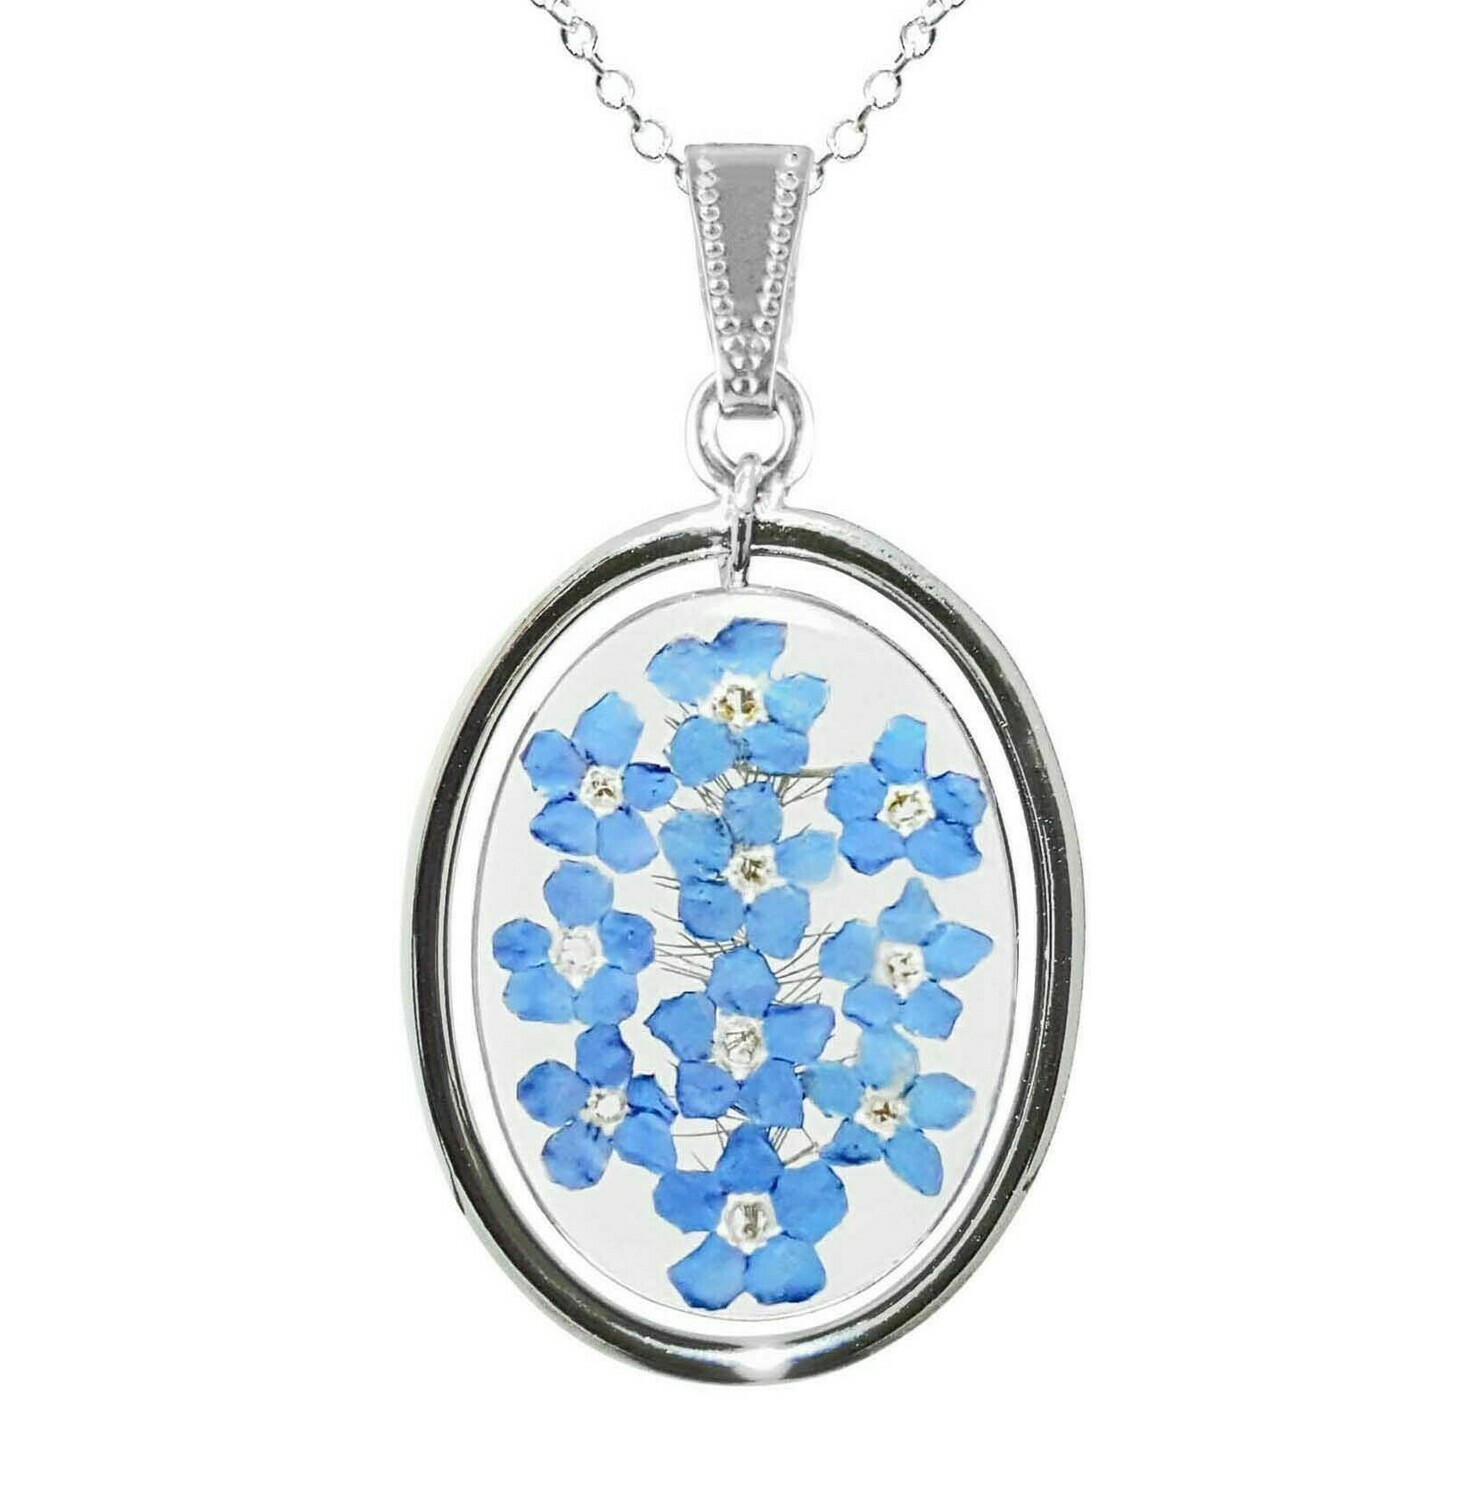 Forget-Me-Not Necklace, Oval Medallion, Transparent